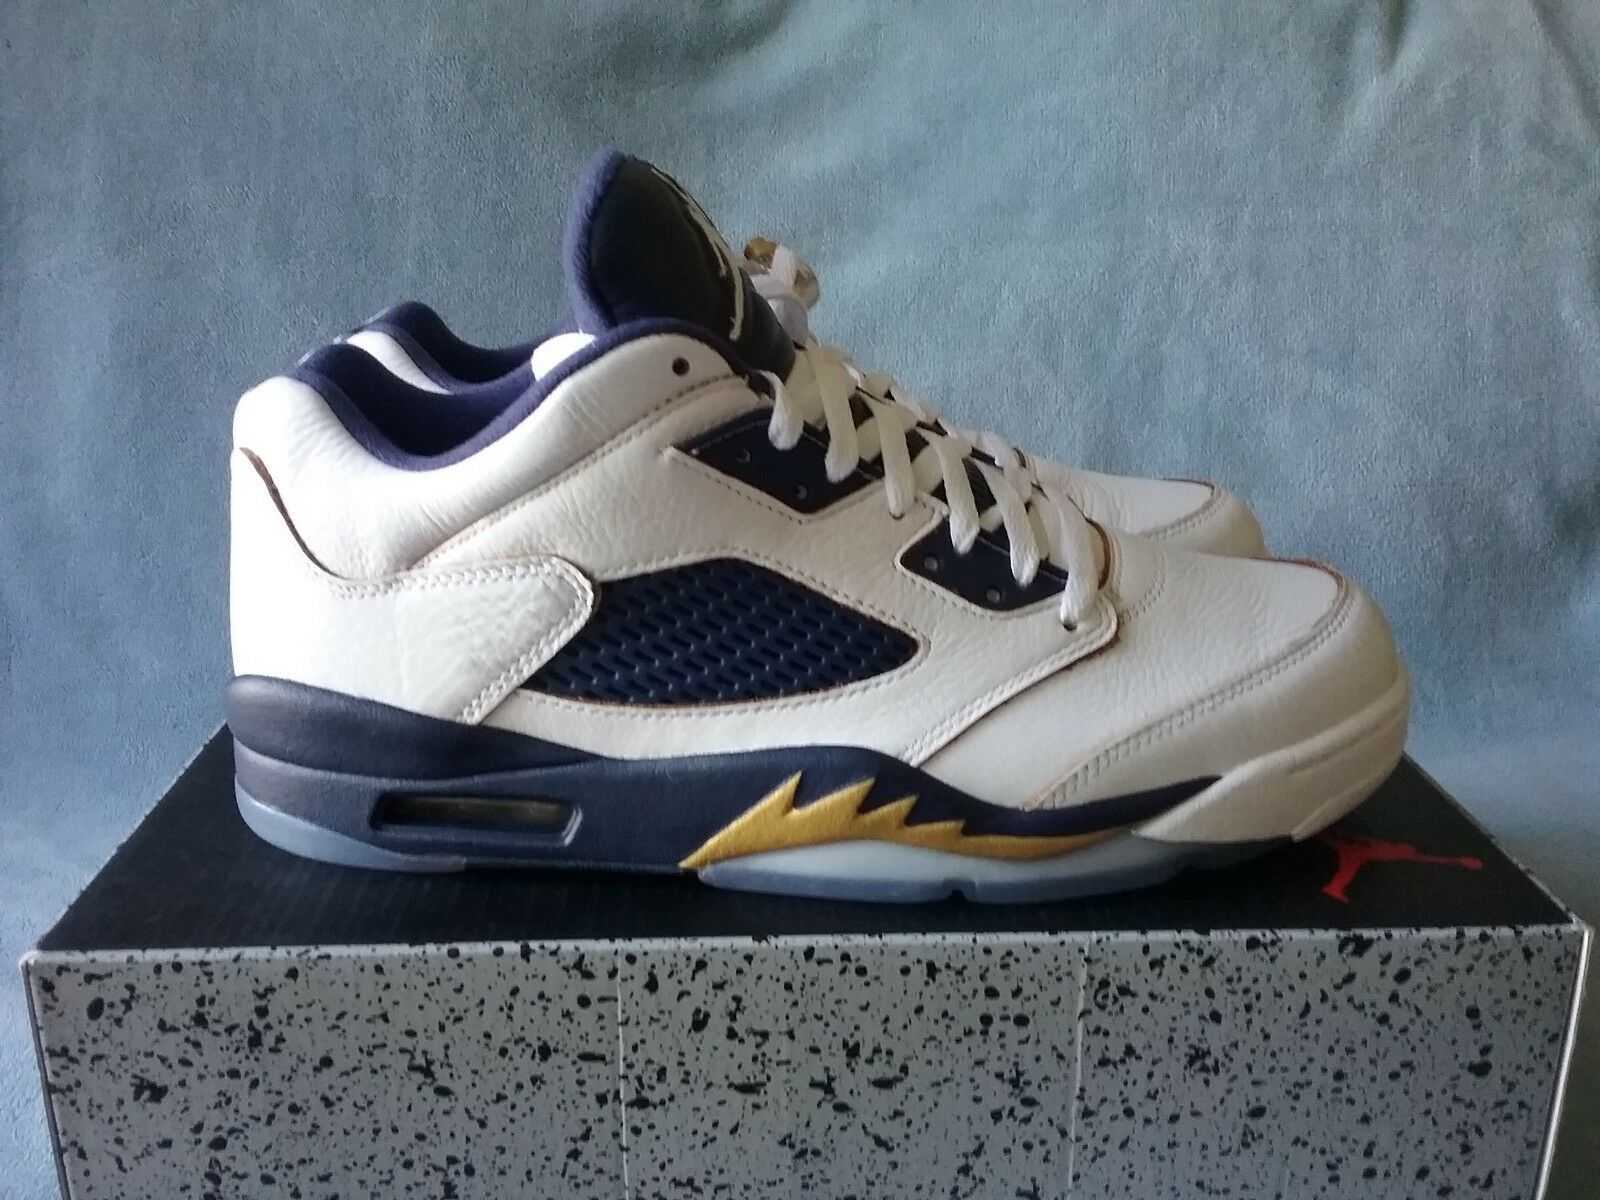 hot sale online ab416 df612 Size 12 Men's Air Jordan Retro 5 Low Dunk From Above 819171 135